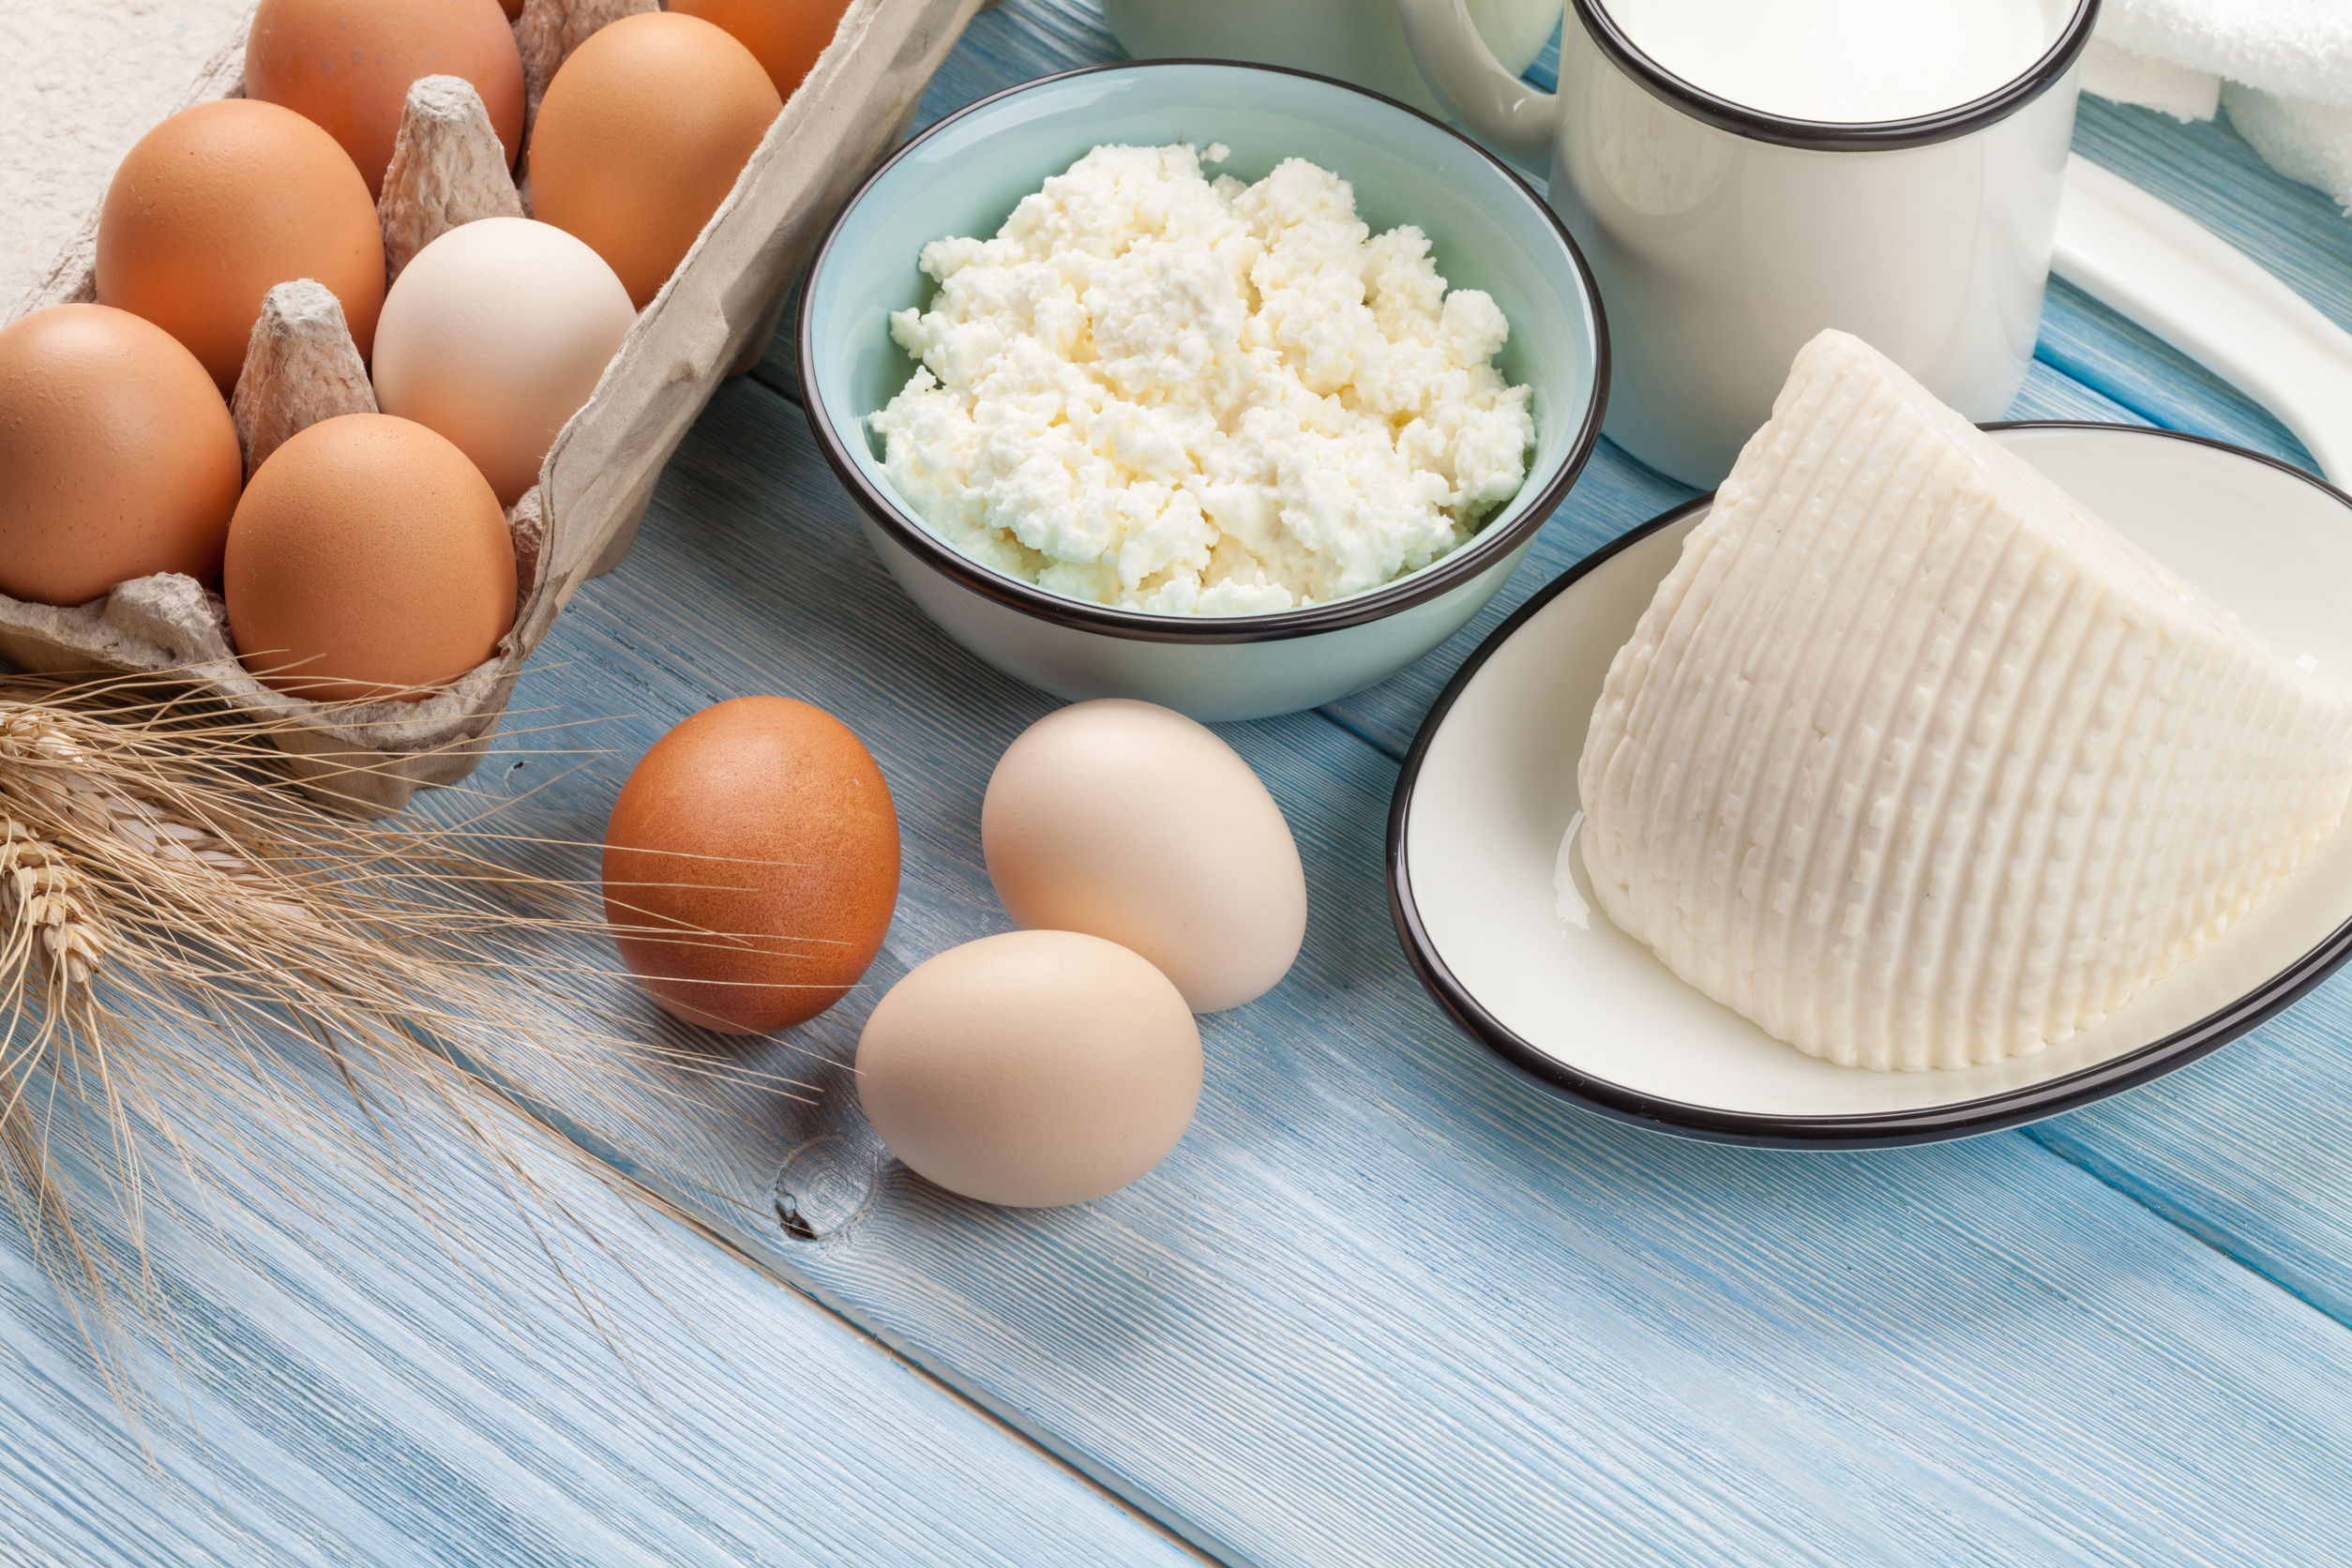 43704972 - dairy products on wooden table. sour cream, milk, cheese, eggs and yogurt